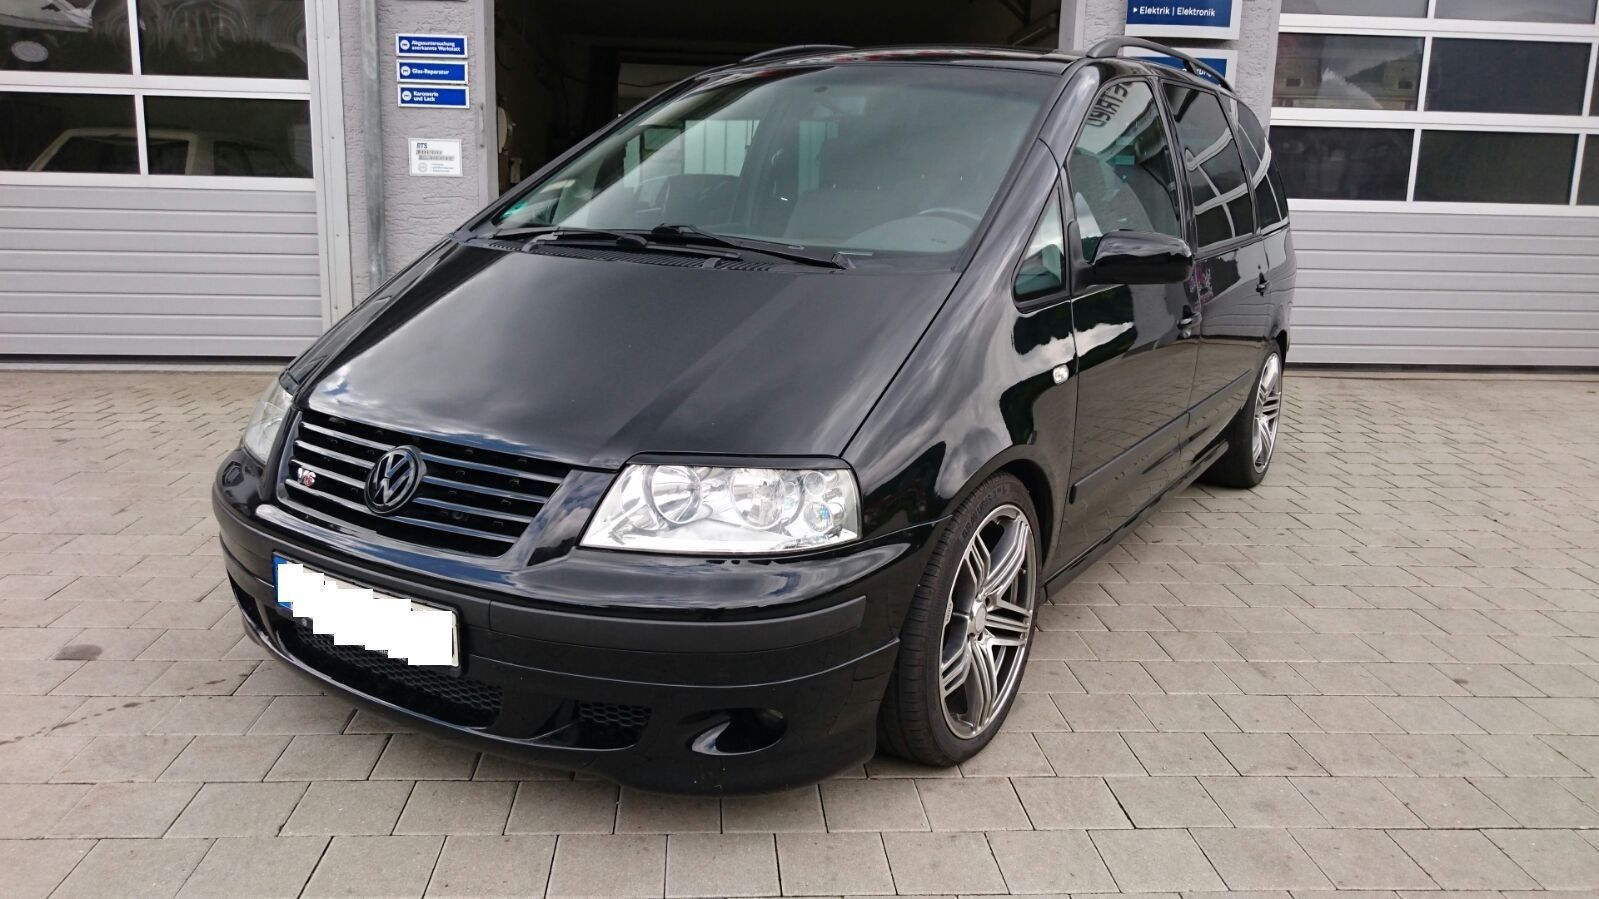 This 440 Ps Turbocharged Vw Sharan Can Be Yours For 11 690